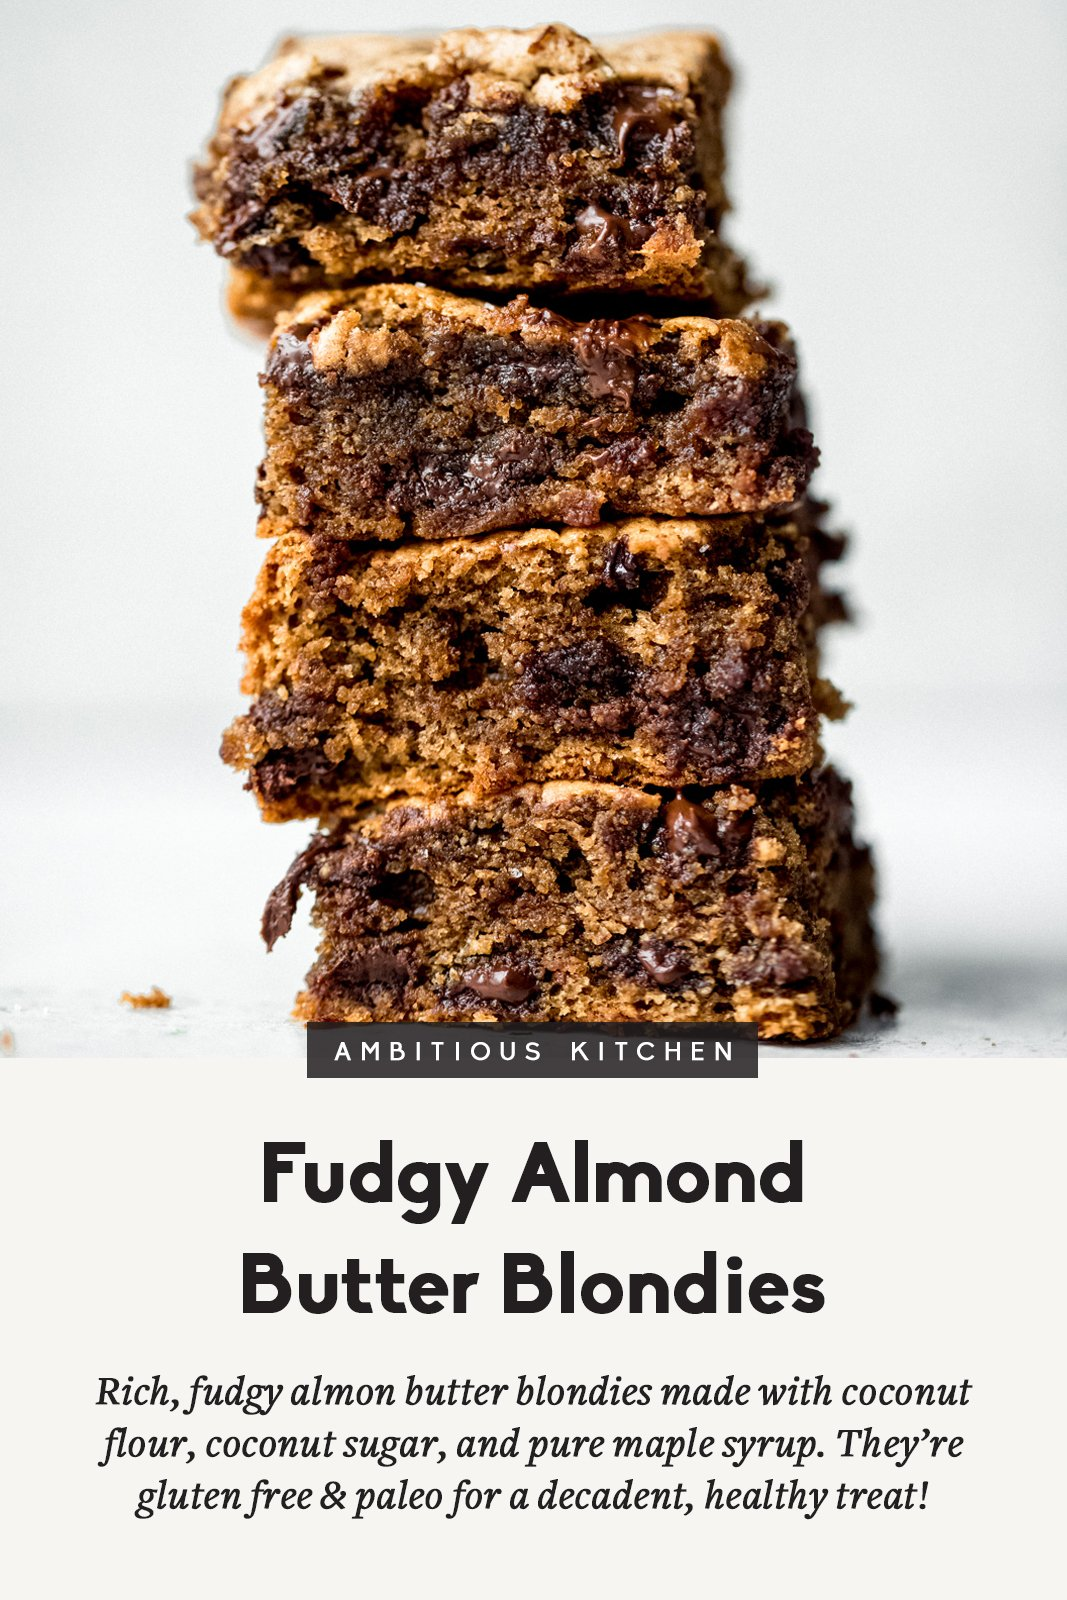 almond butter blondie photo with text overlay